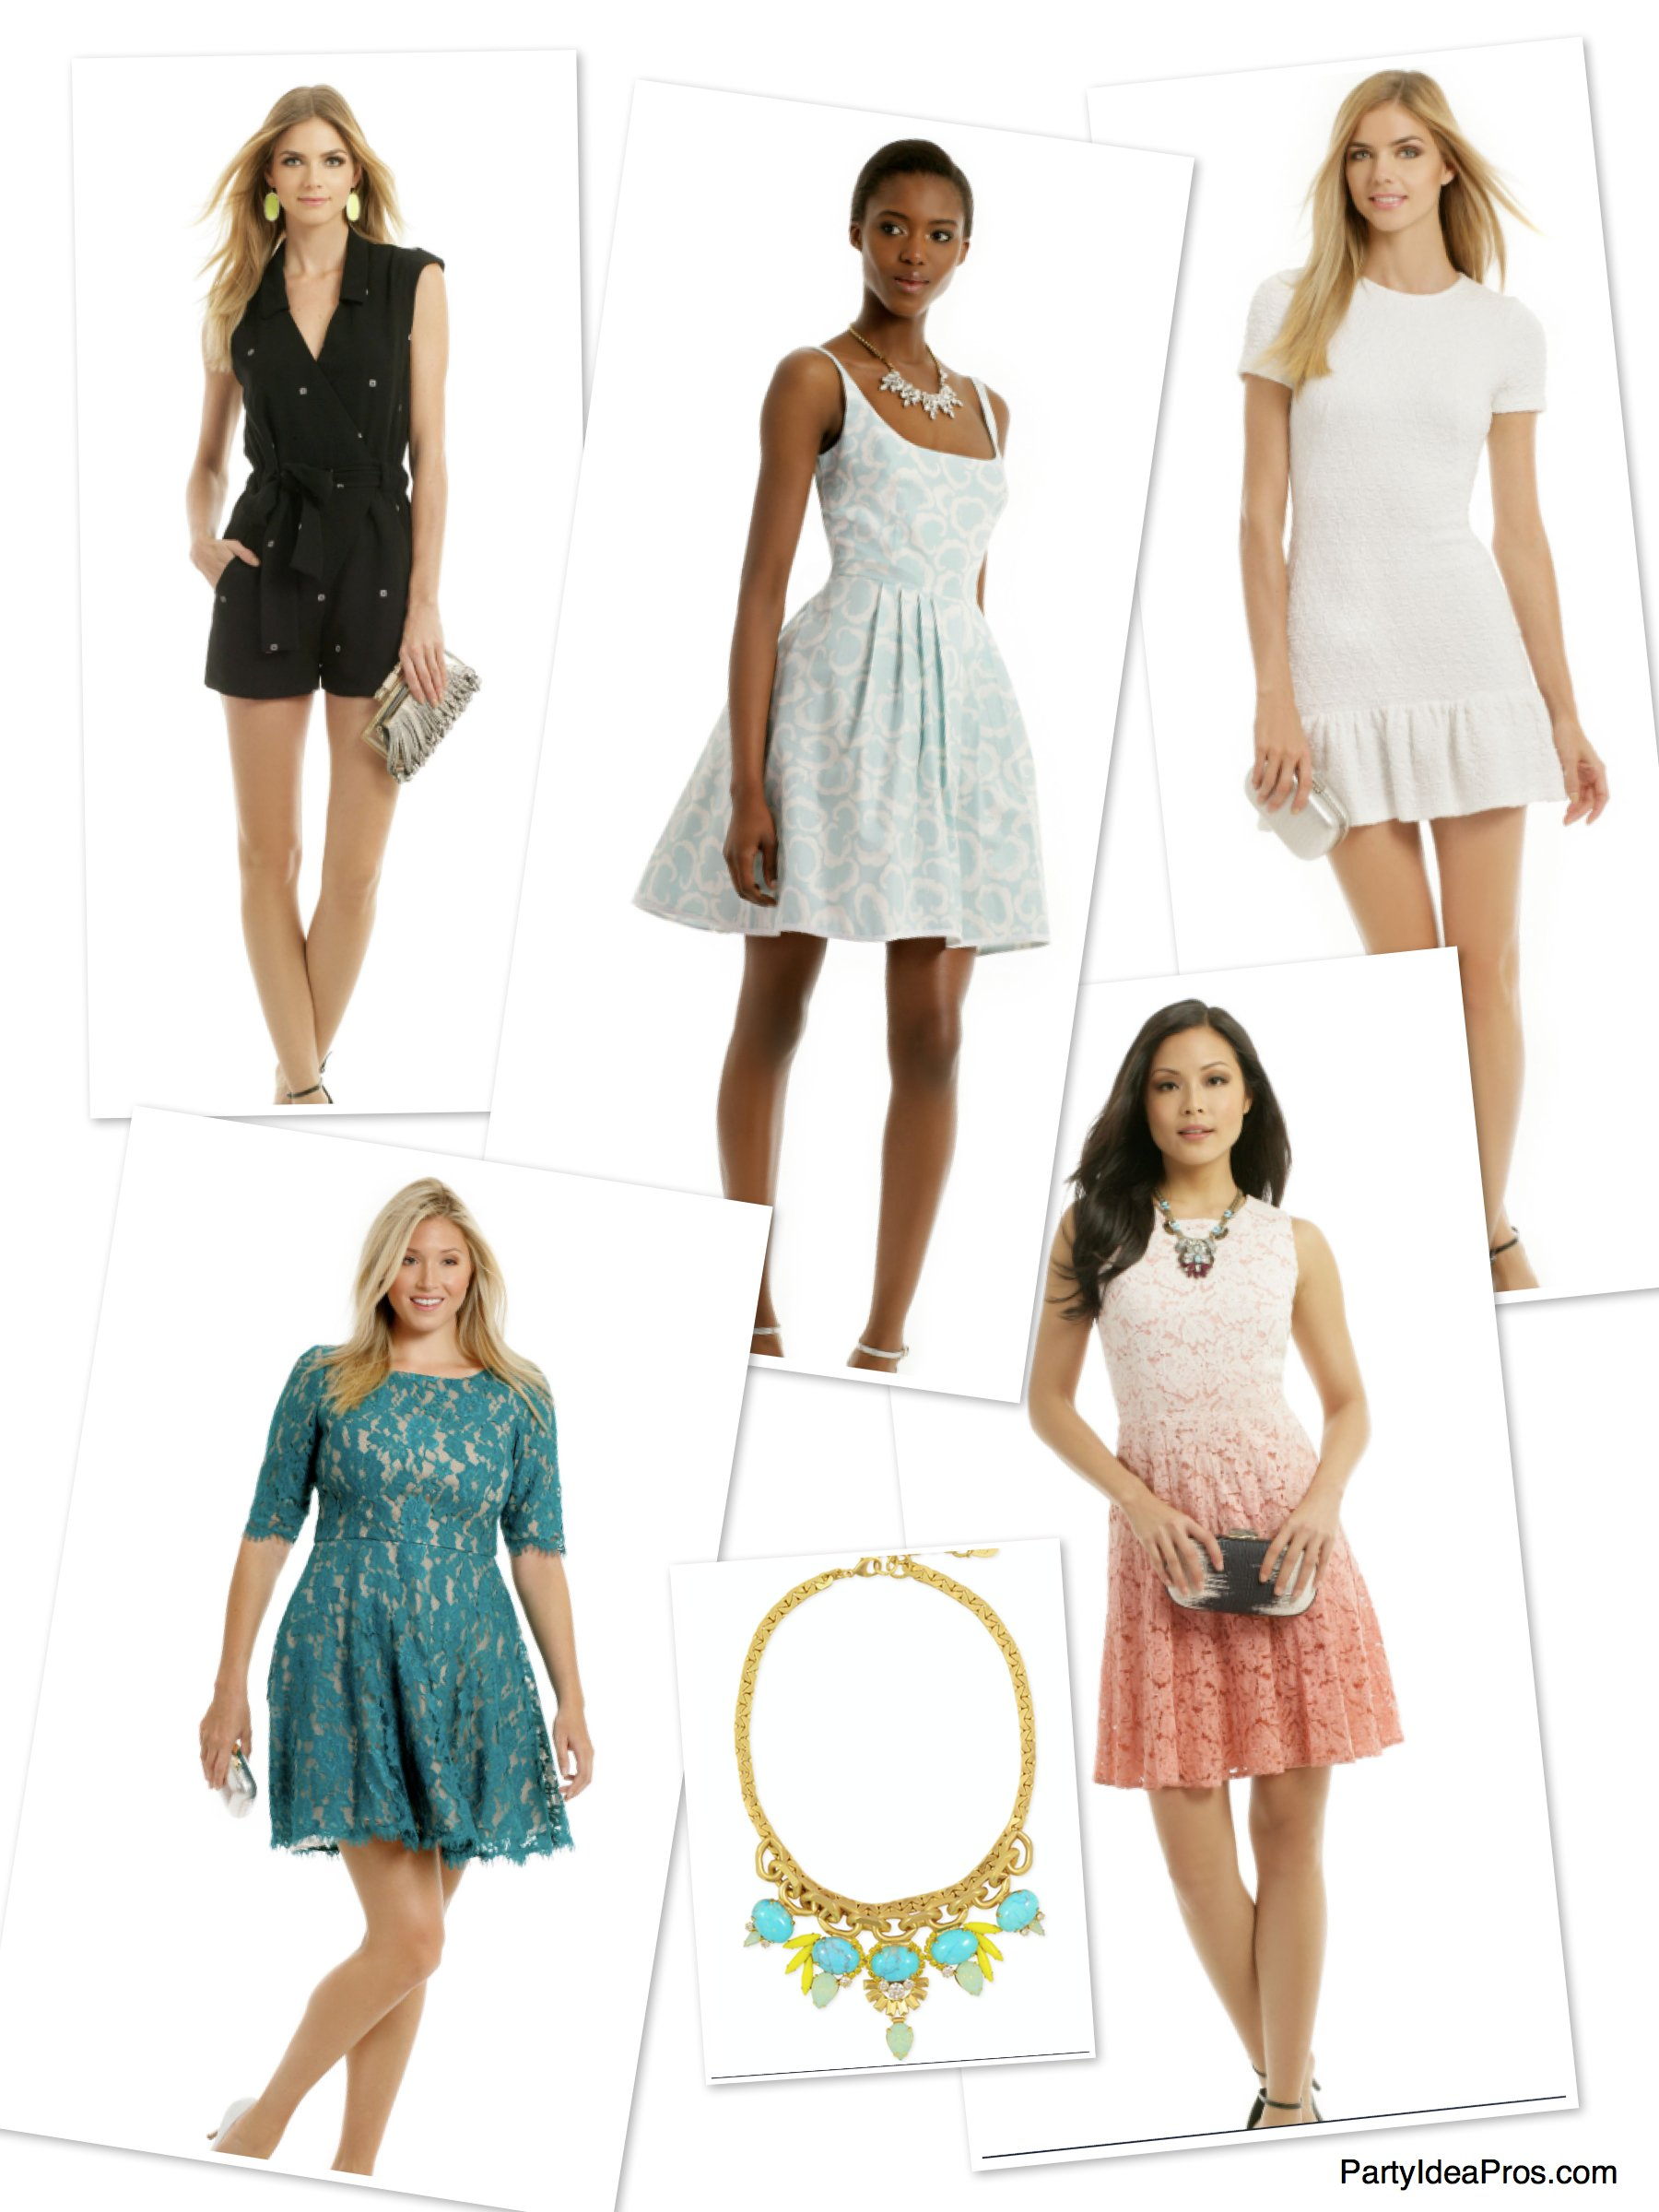 Rent Sorority Rush Dresses - Fabulous, Budget Friendly Outfits for Every Round of Rush